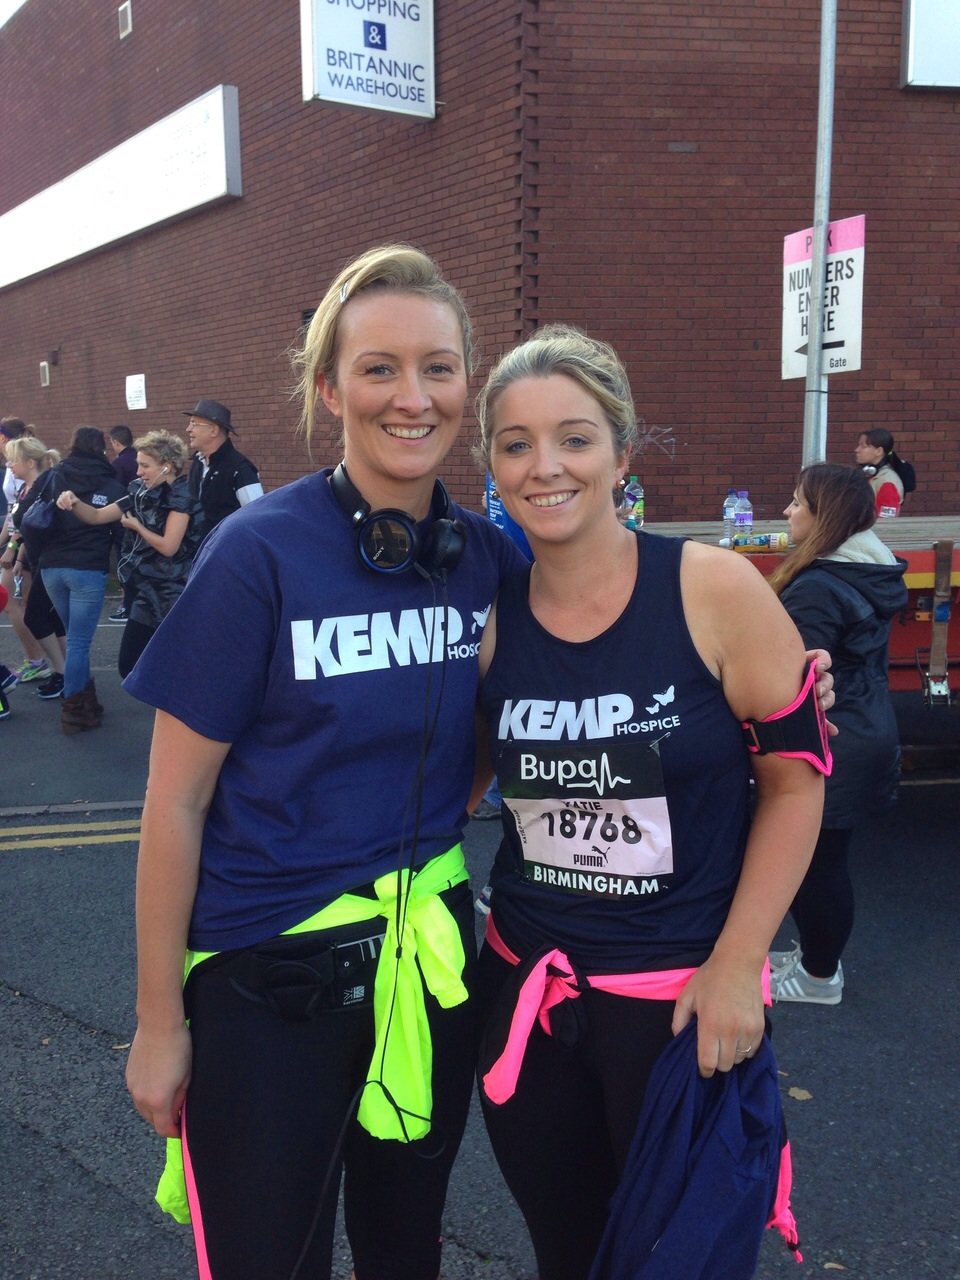 Birmingham Half Marathon raises more than £400 for KEMP Hospice